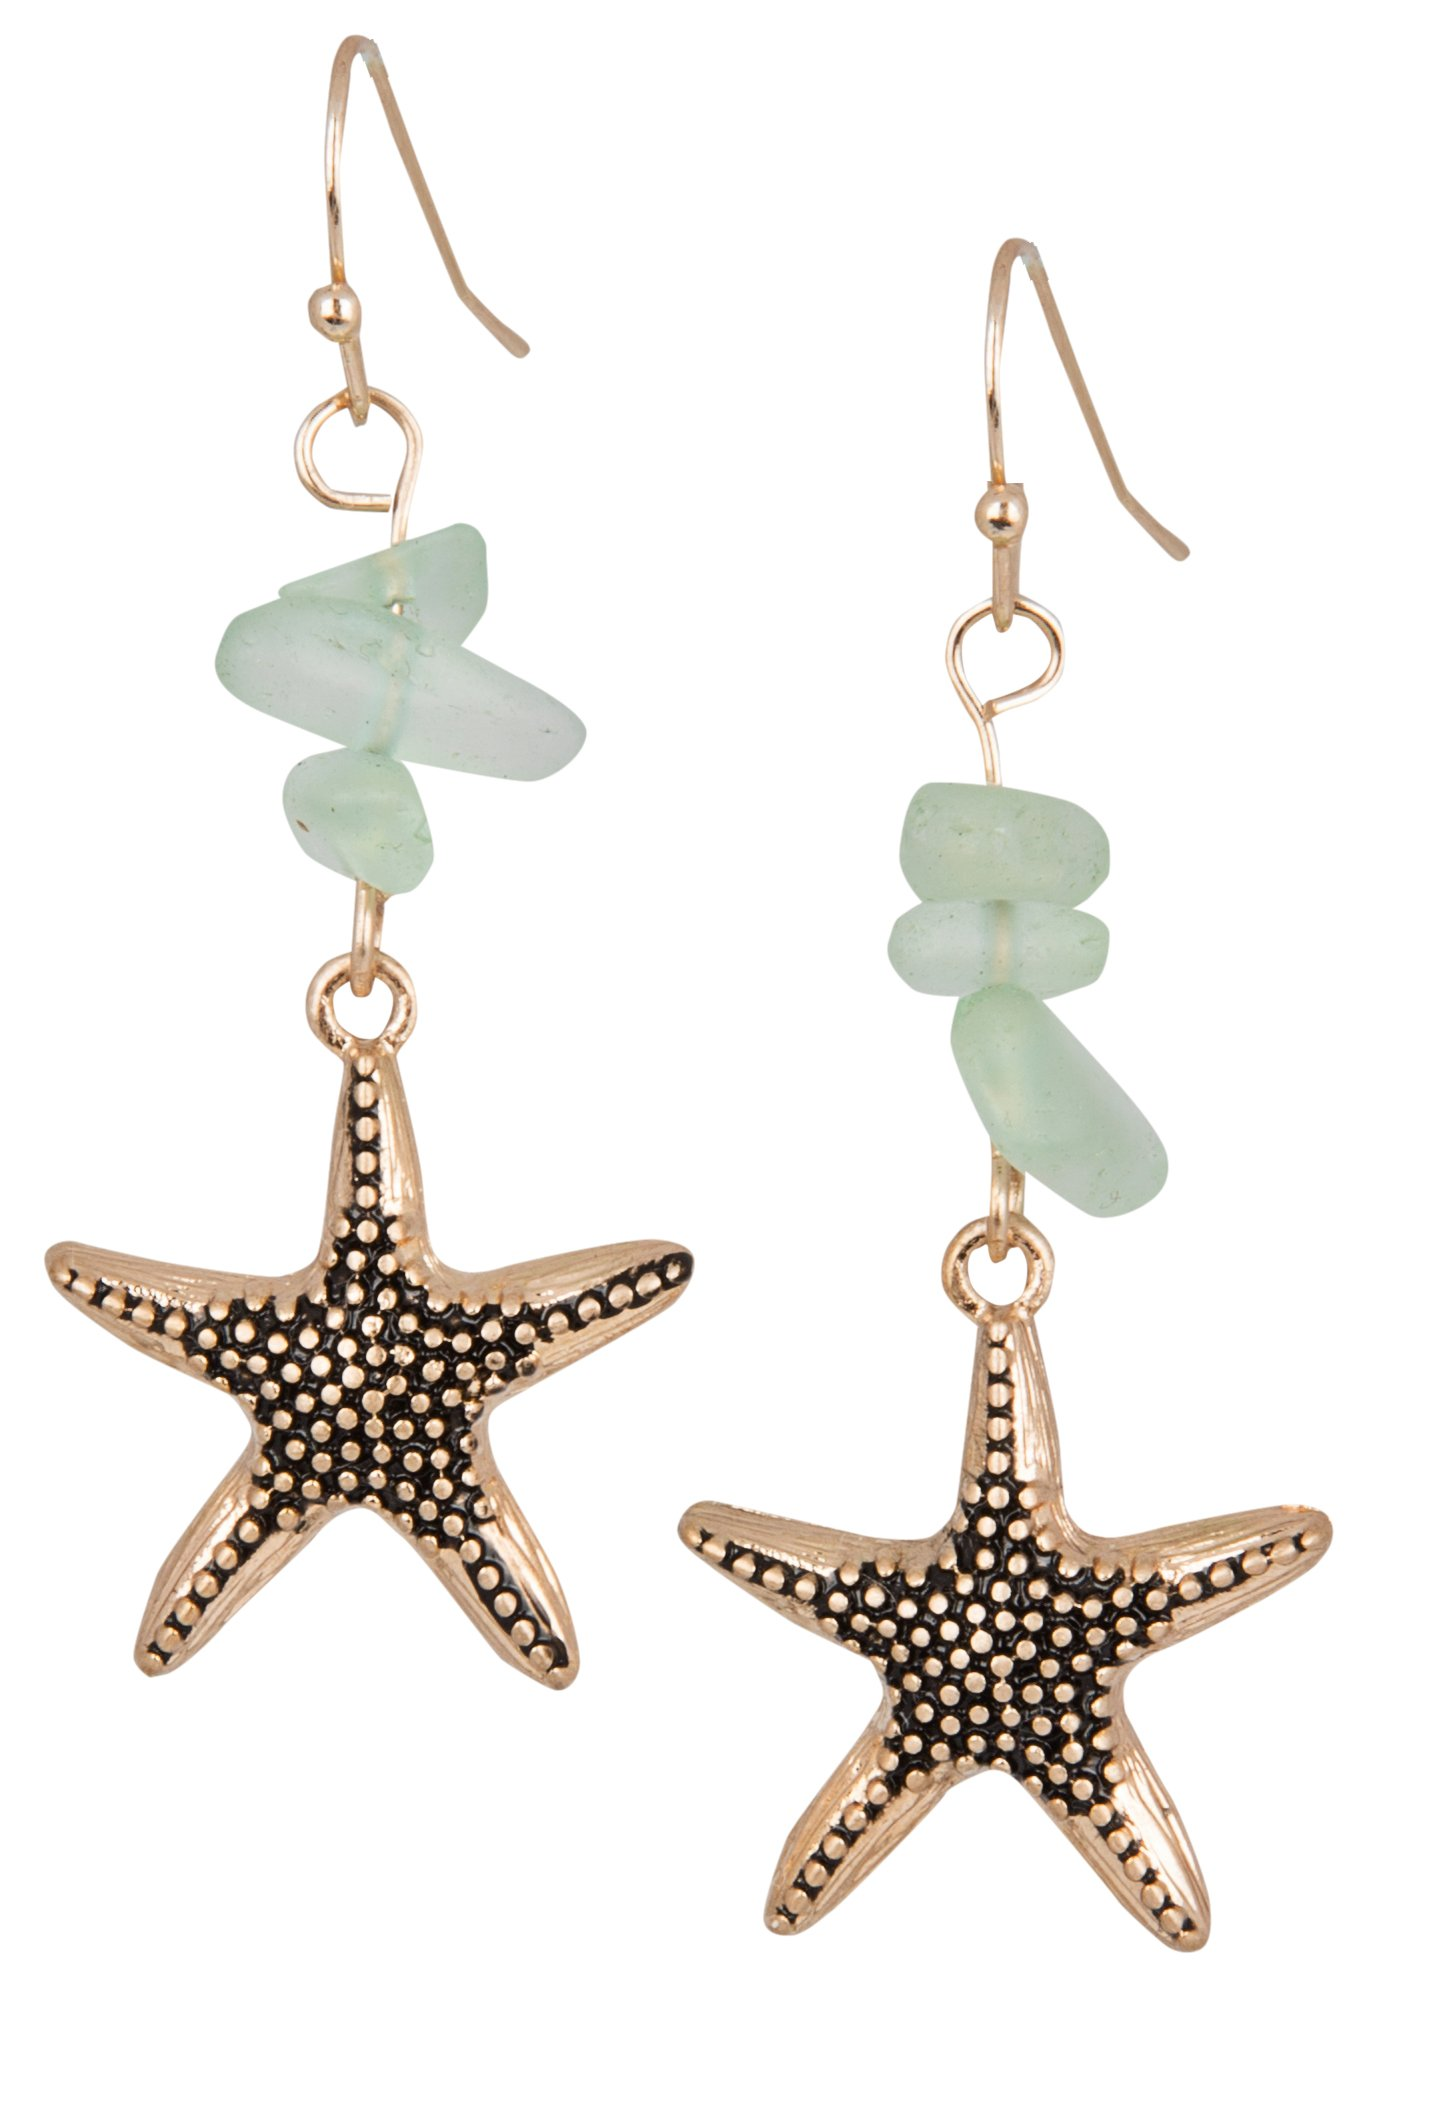 Sea Glass Starfish Earrings Gift Set for Women Silver & Blue or Gold & Green | SPUNKYsoul Beach Collection (Gold Green)